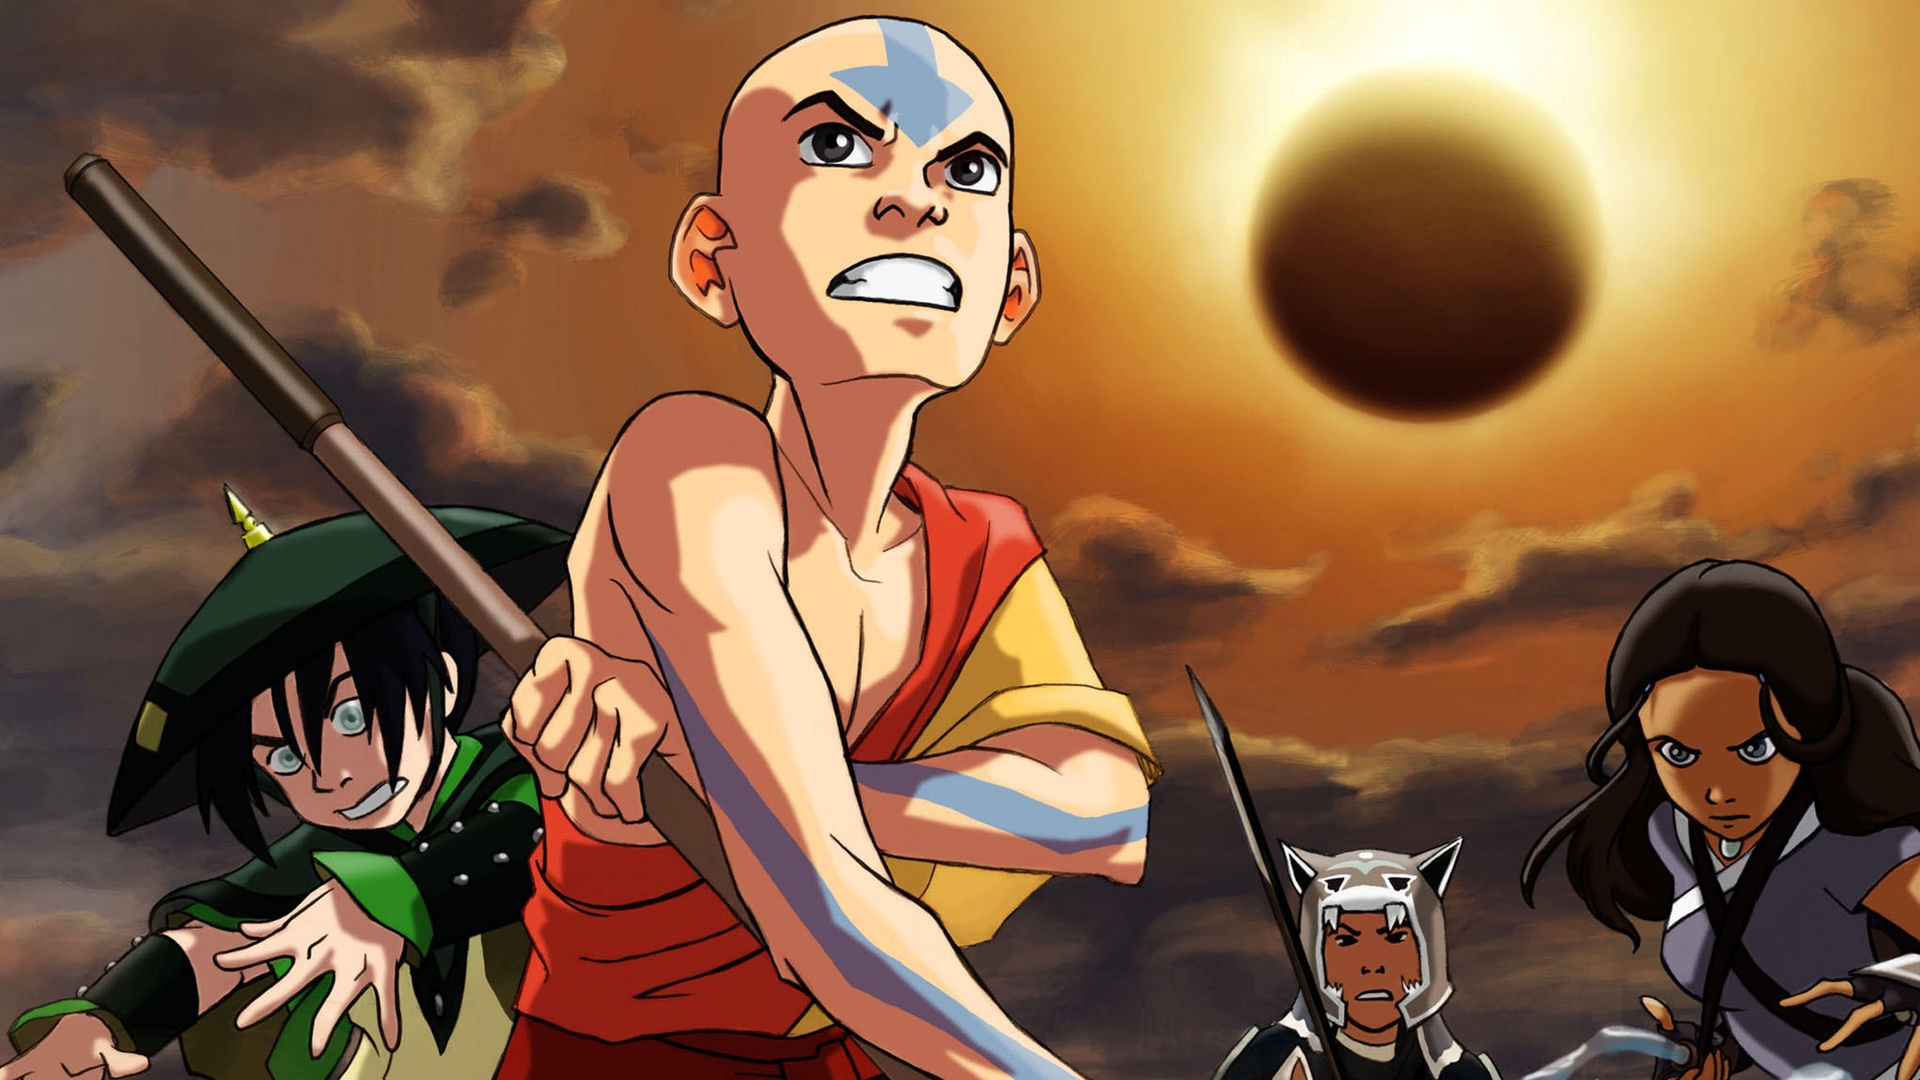 Avatar The Last Airbender Fun Facts And Hd Wallpapers 2019